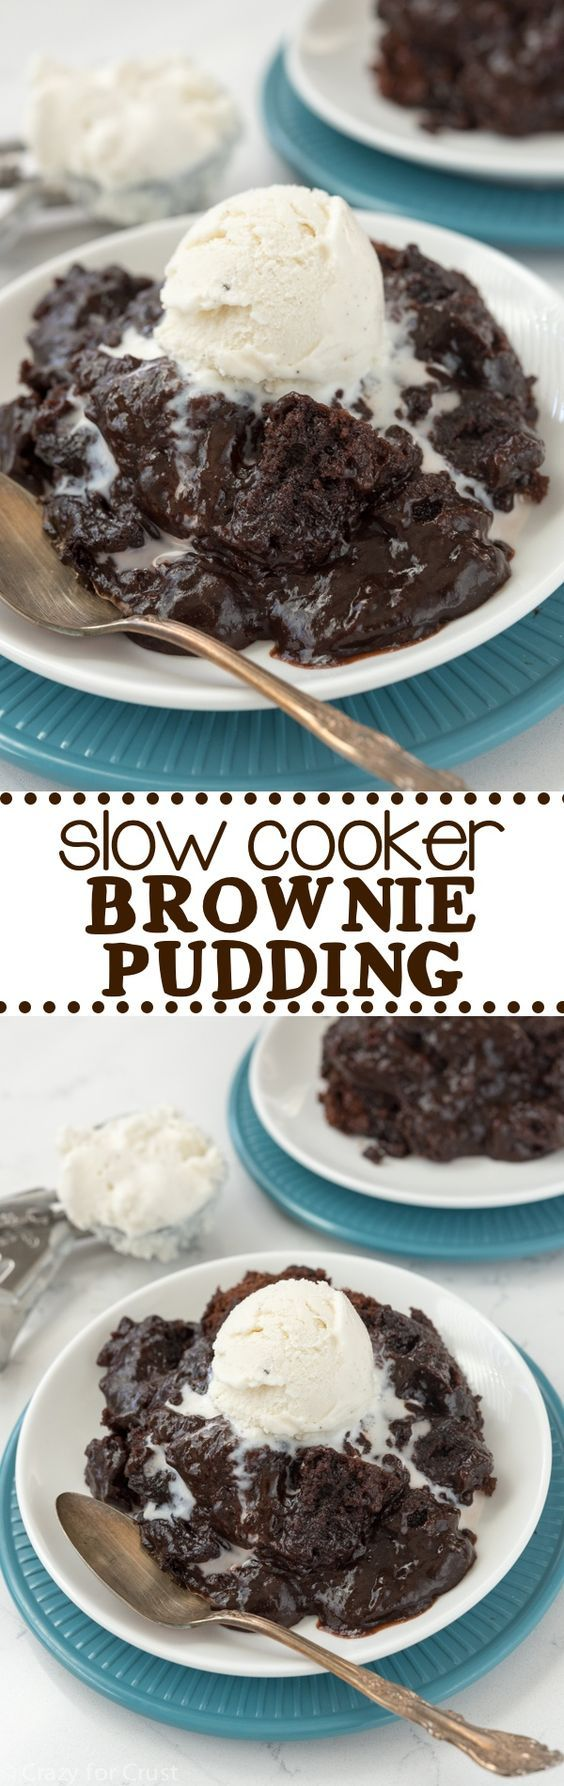 Food and Drink: Slow Cooker Brownie Pudding - Crazy for Crust